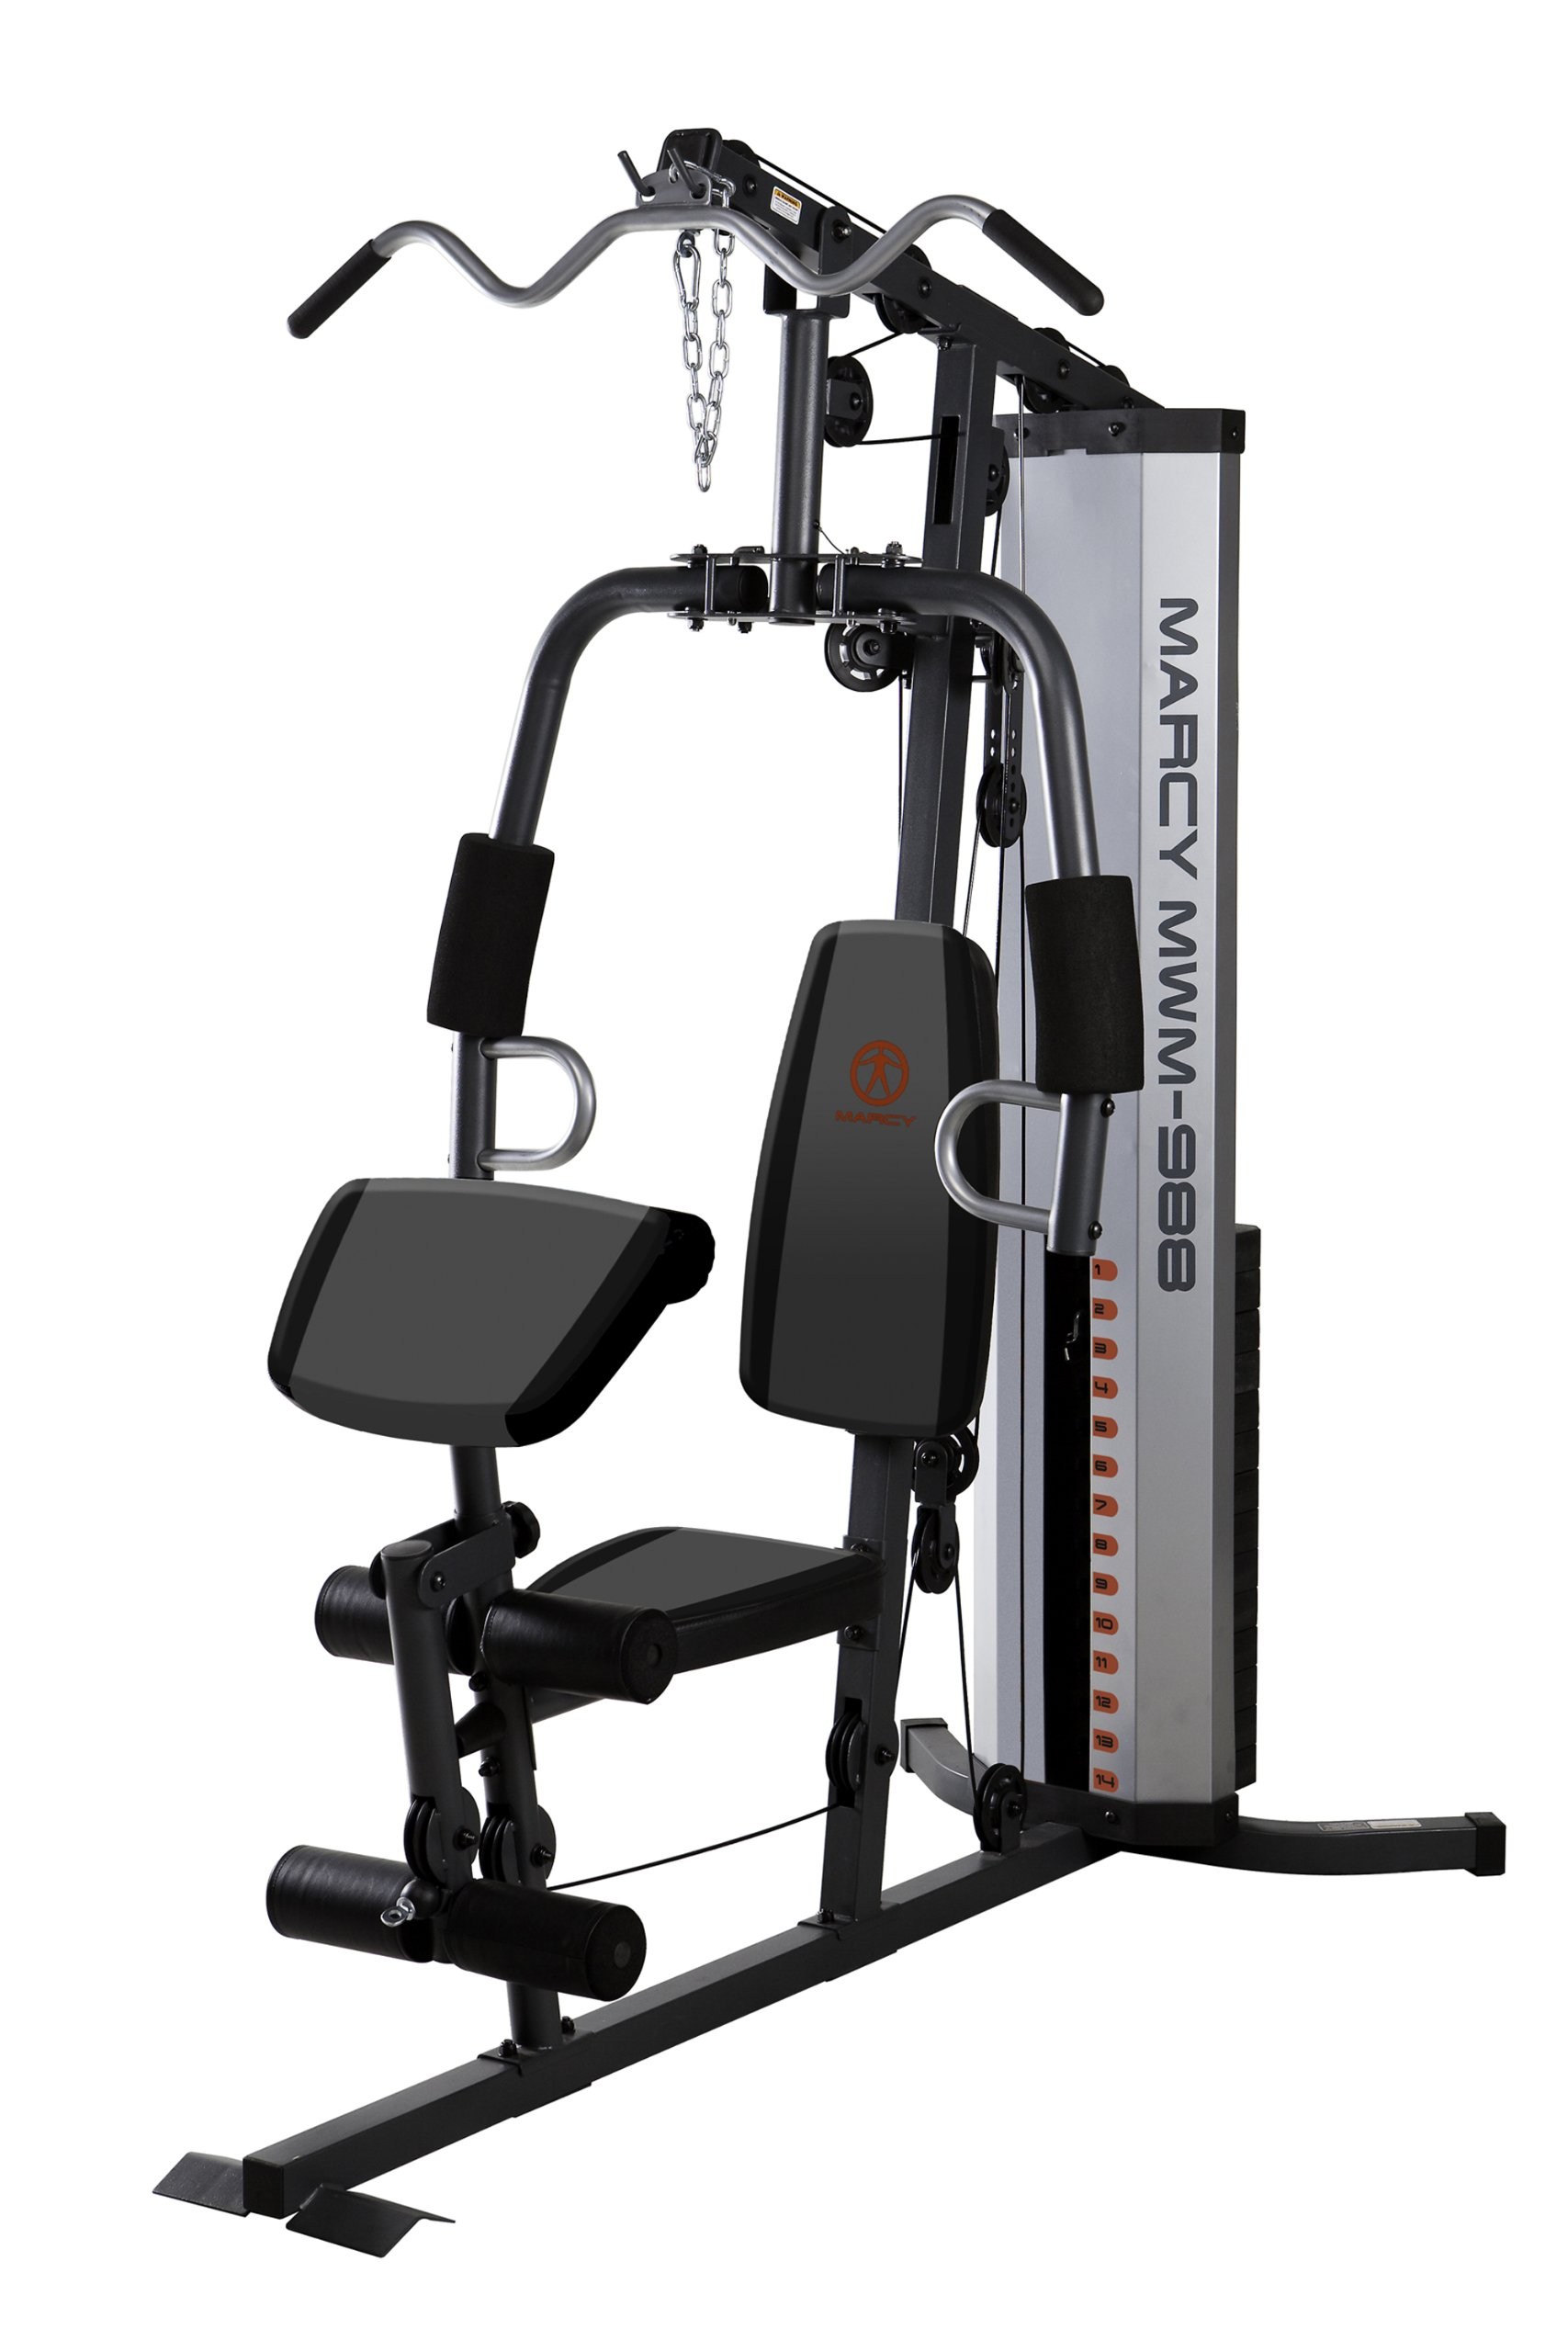 Marcy Multifunction Steel Home Gym 150lb Stack MWM-988 by Marcy (Image #2)